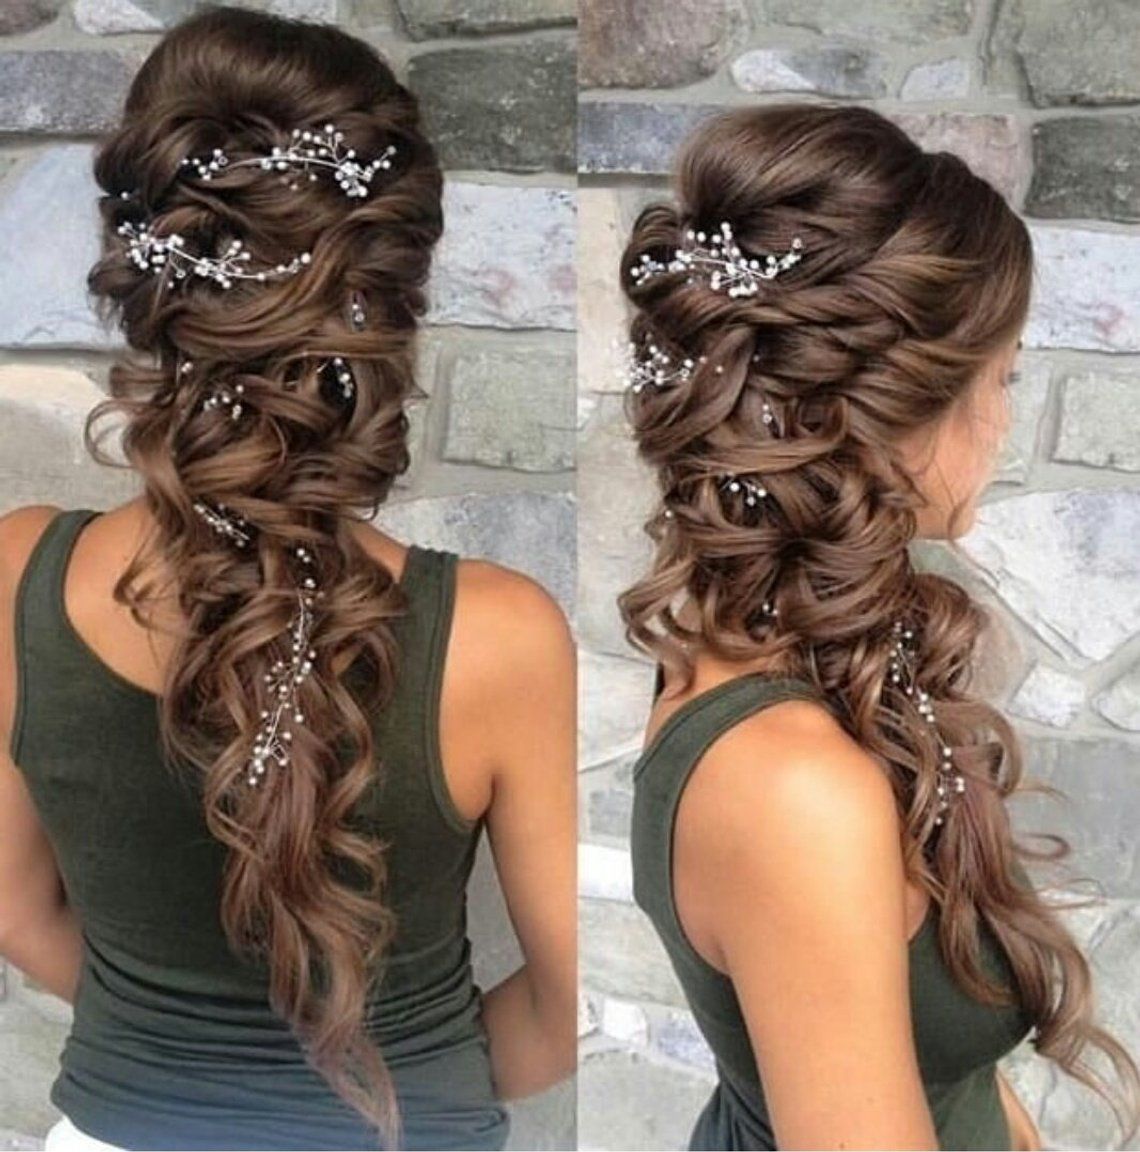 20 Gorgeous Wedding Hairstyles For Long Hair: Extra Long Hair Vine Extra Long Headpiece Wedding Hair